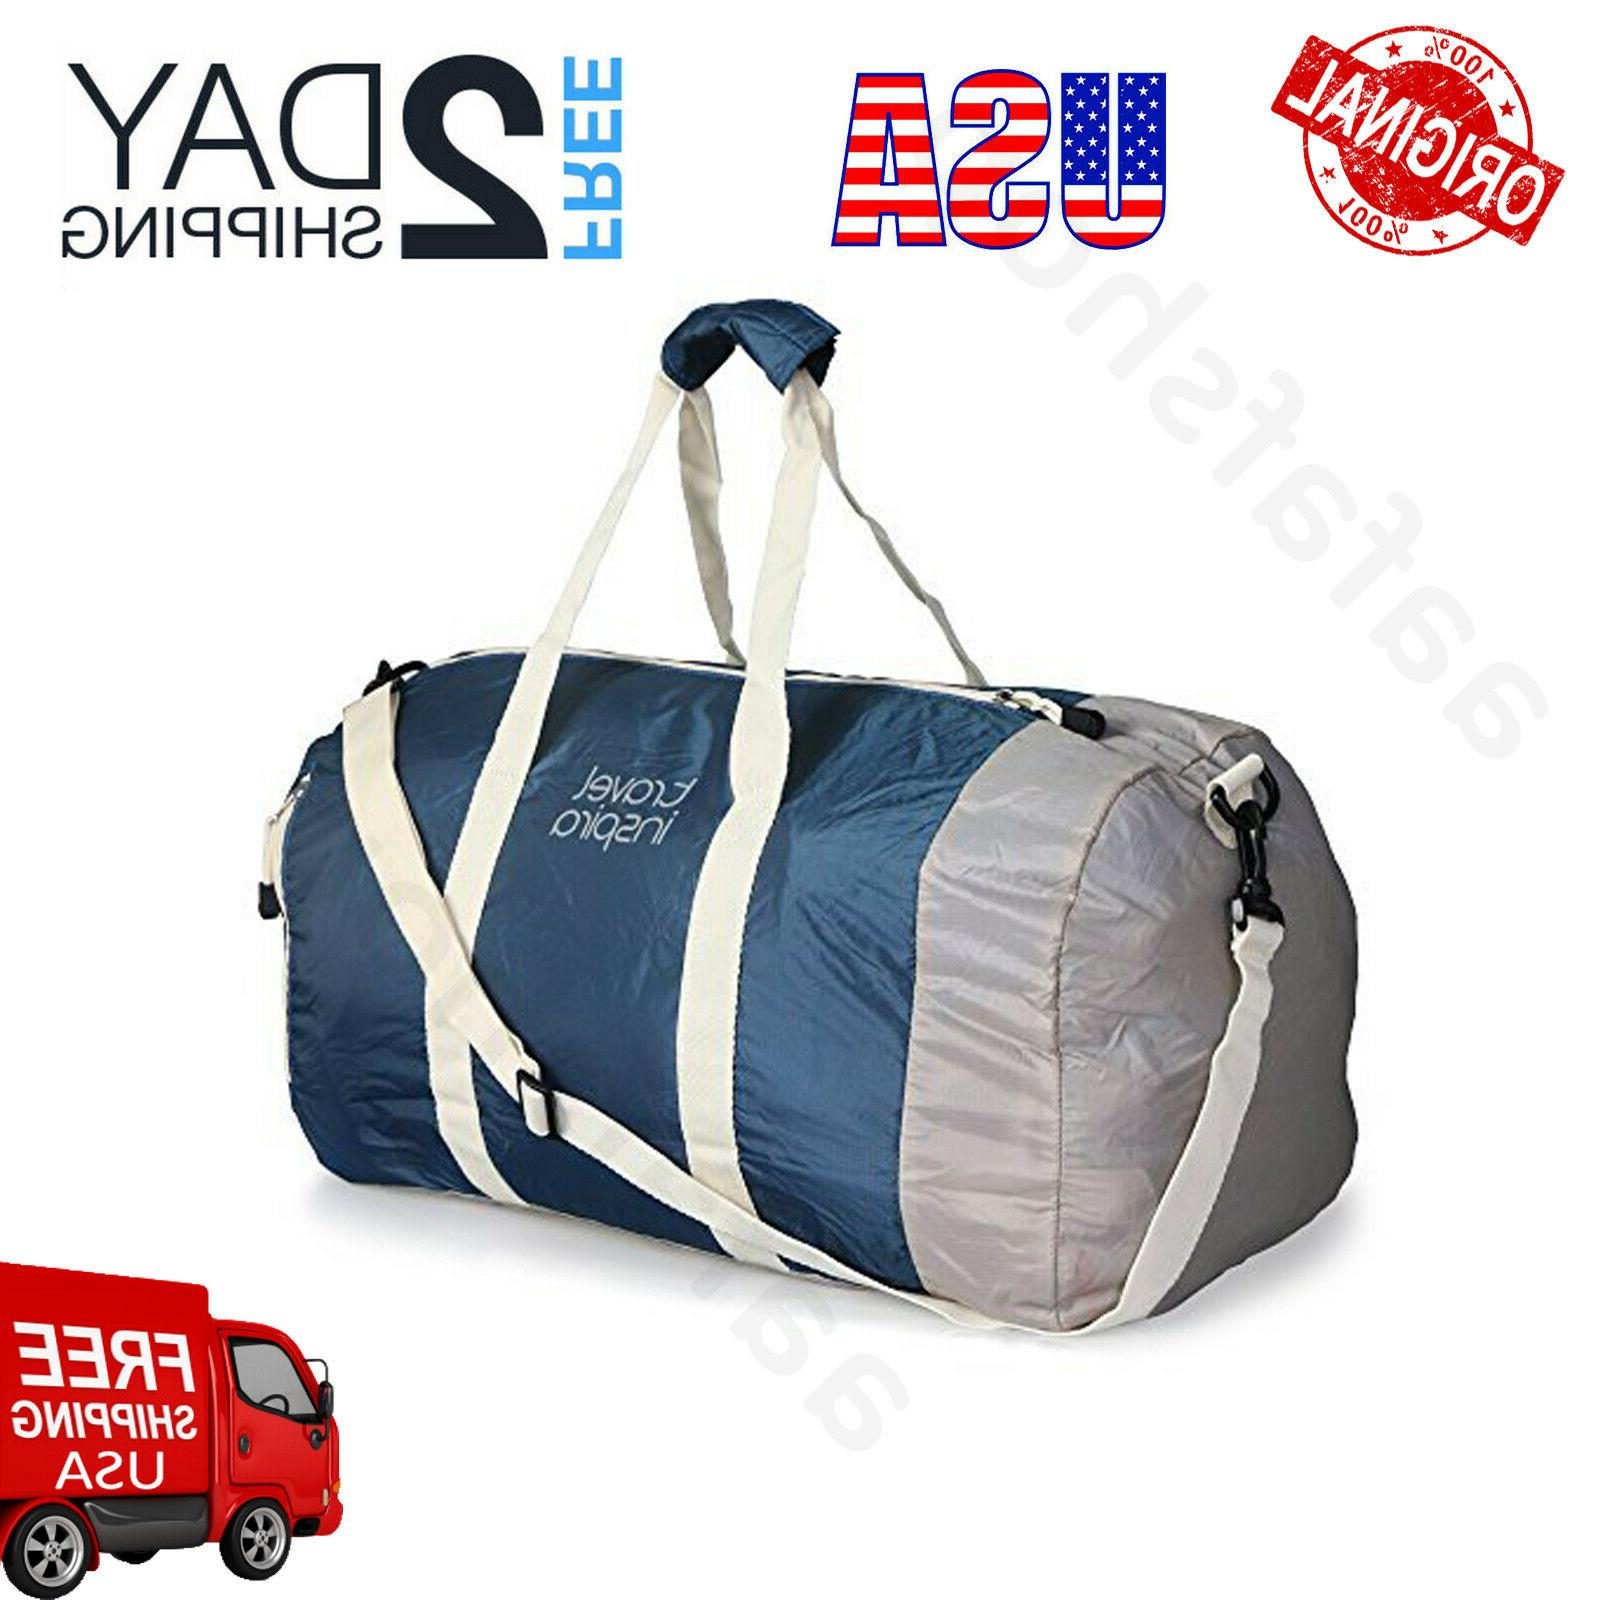 Travel Inspira Foldable Duffel Travel Duffle Bag Collapsible